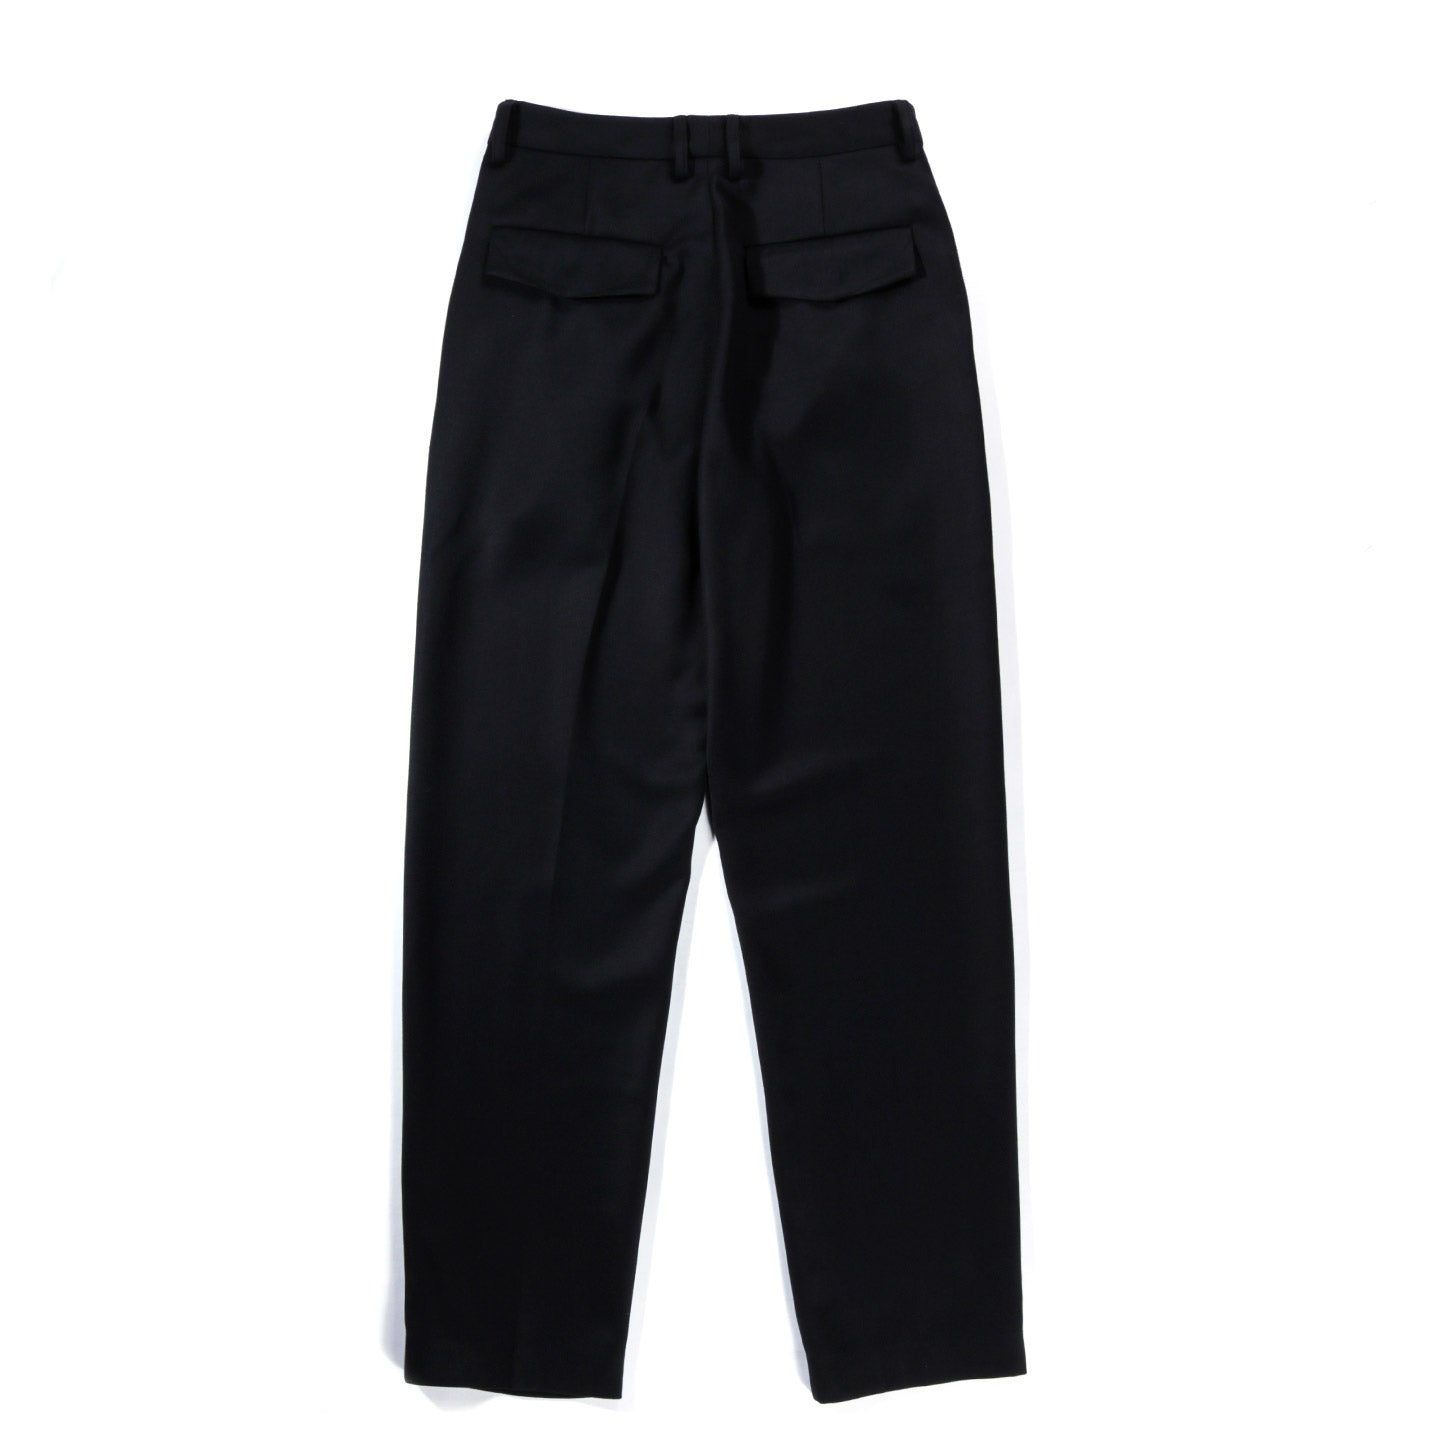 CARTER YOUNG TAILORED PANT NAVY WOOL BLEND